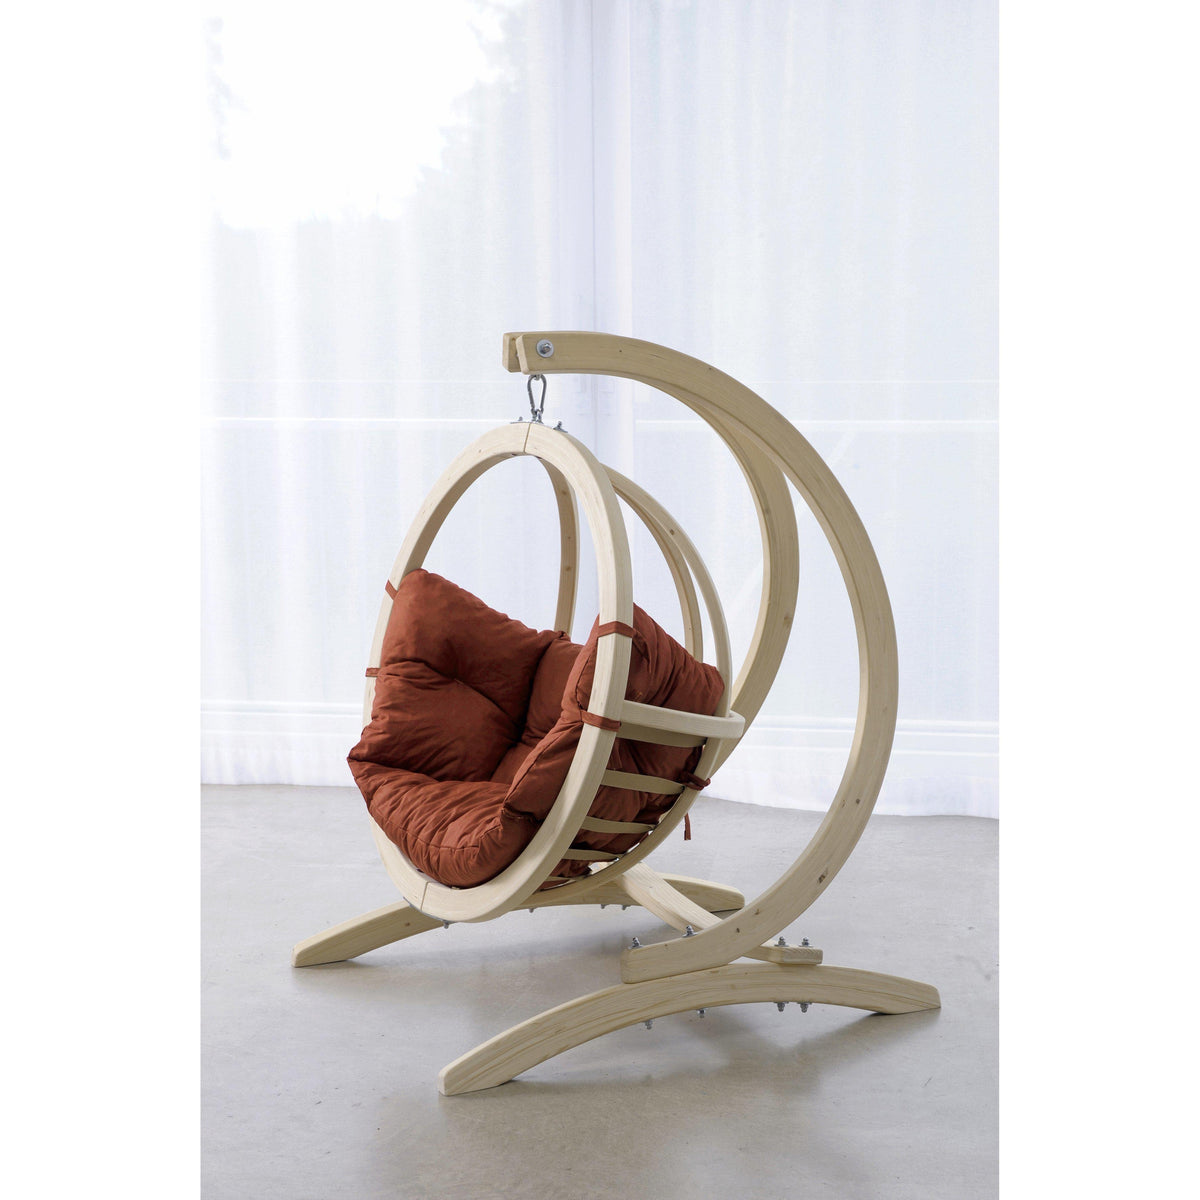 Globo Kid's Chair and Stand, Terracotta Agora, from Byer of Maine